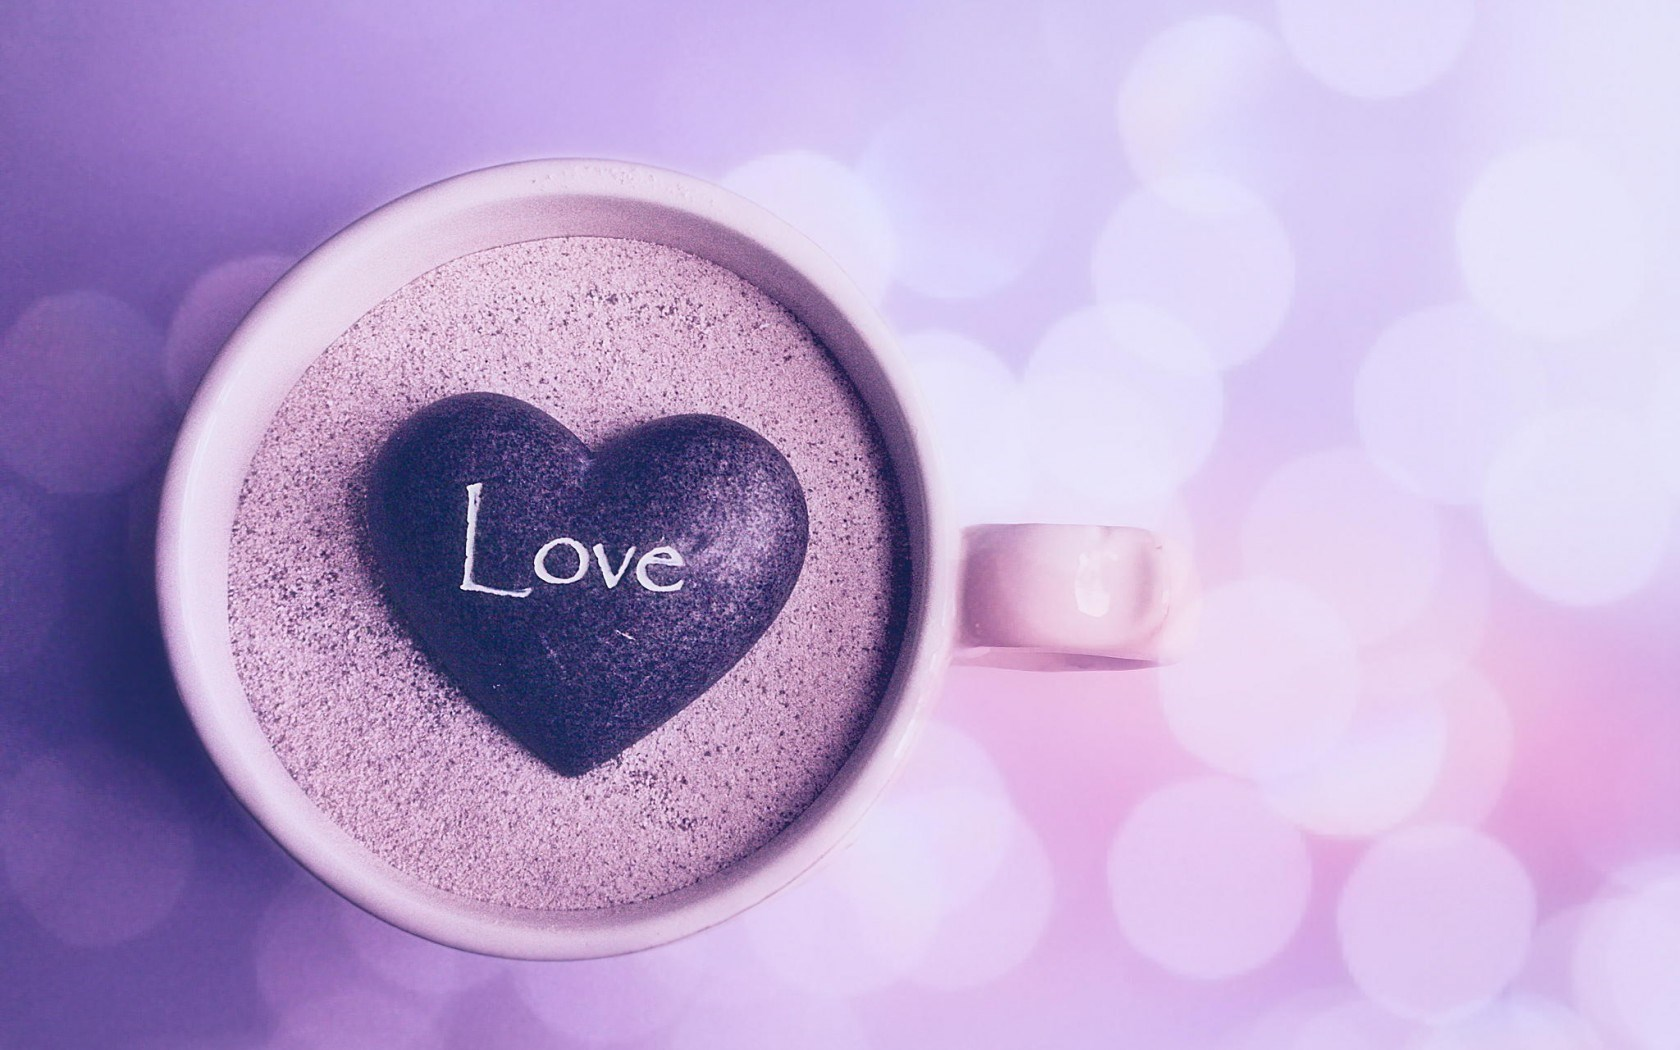 Cup Mug Heart Love Mood